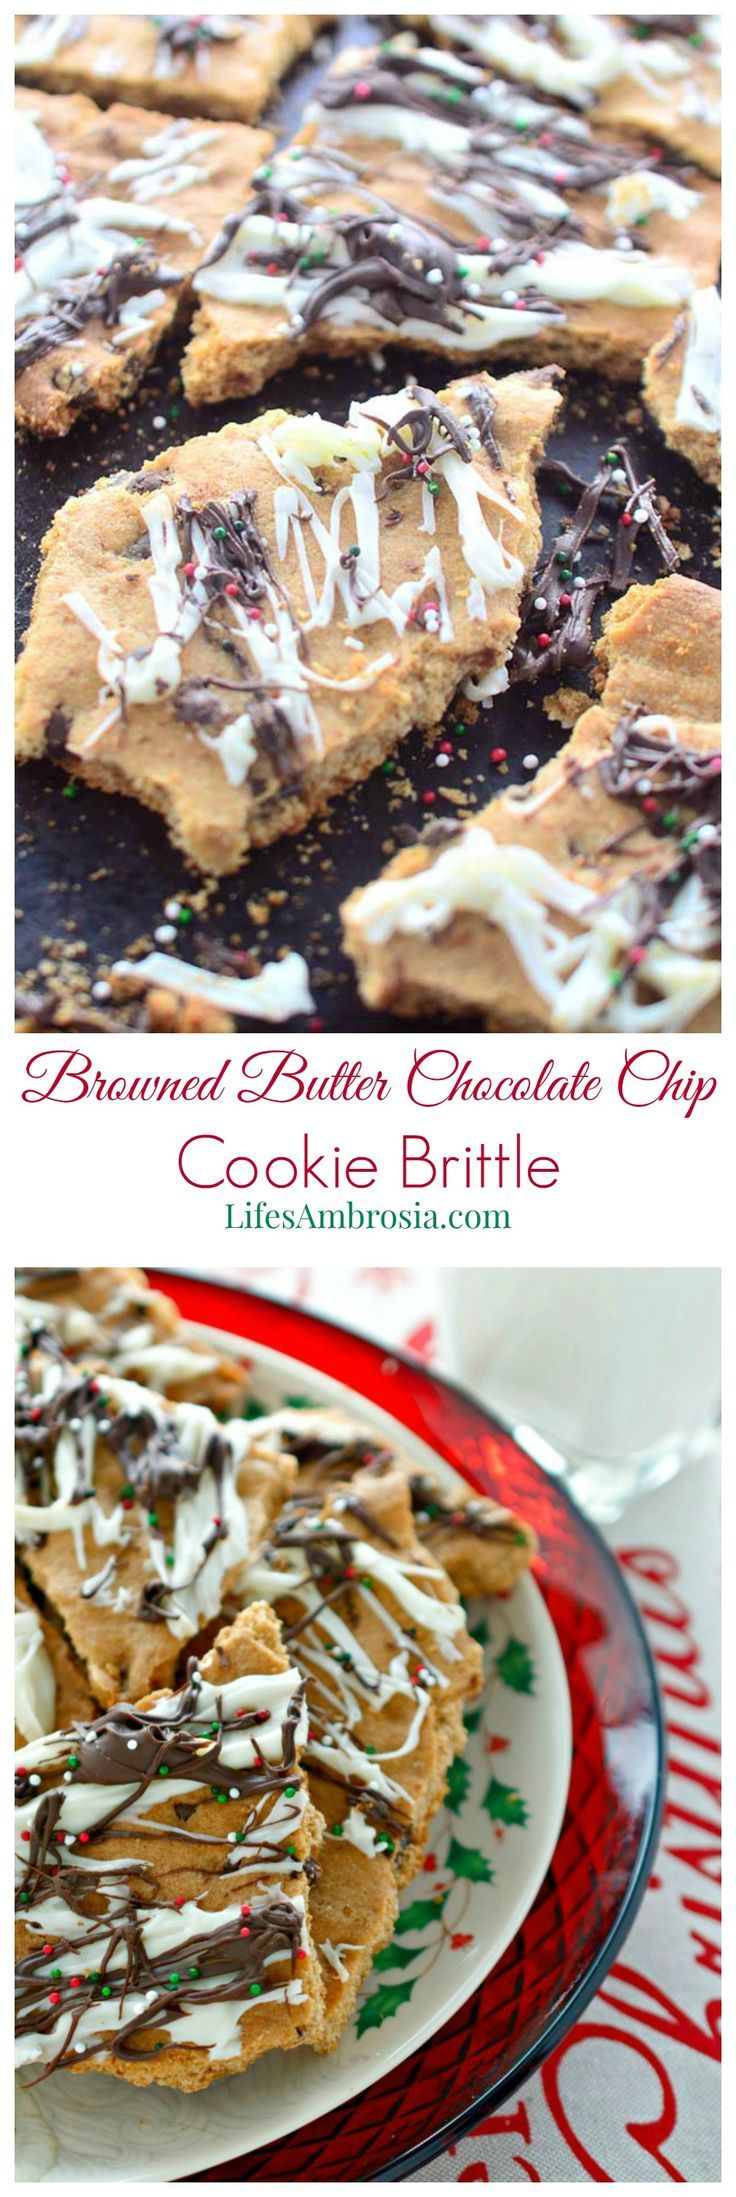 This Browned Butter Chocolate Chip Cookie Brittle is quick, easy and perfect for holiday gifts!: